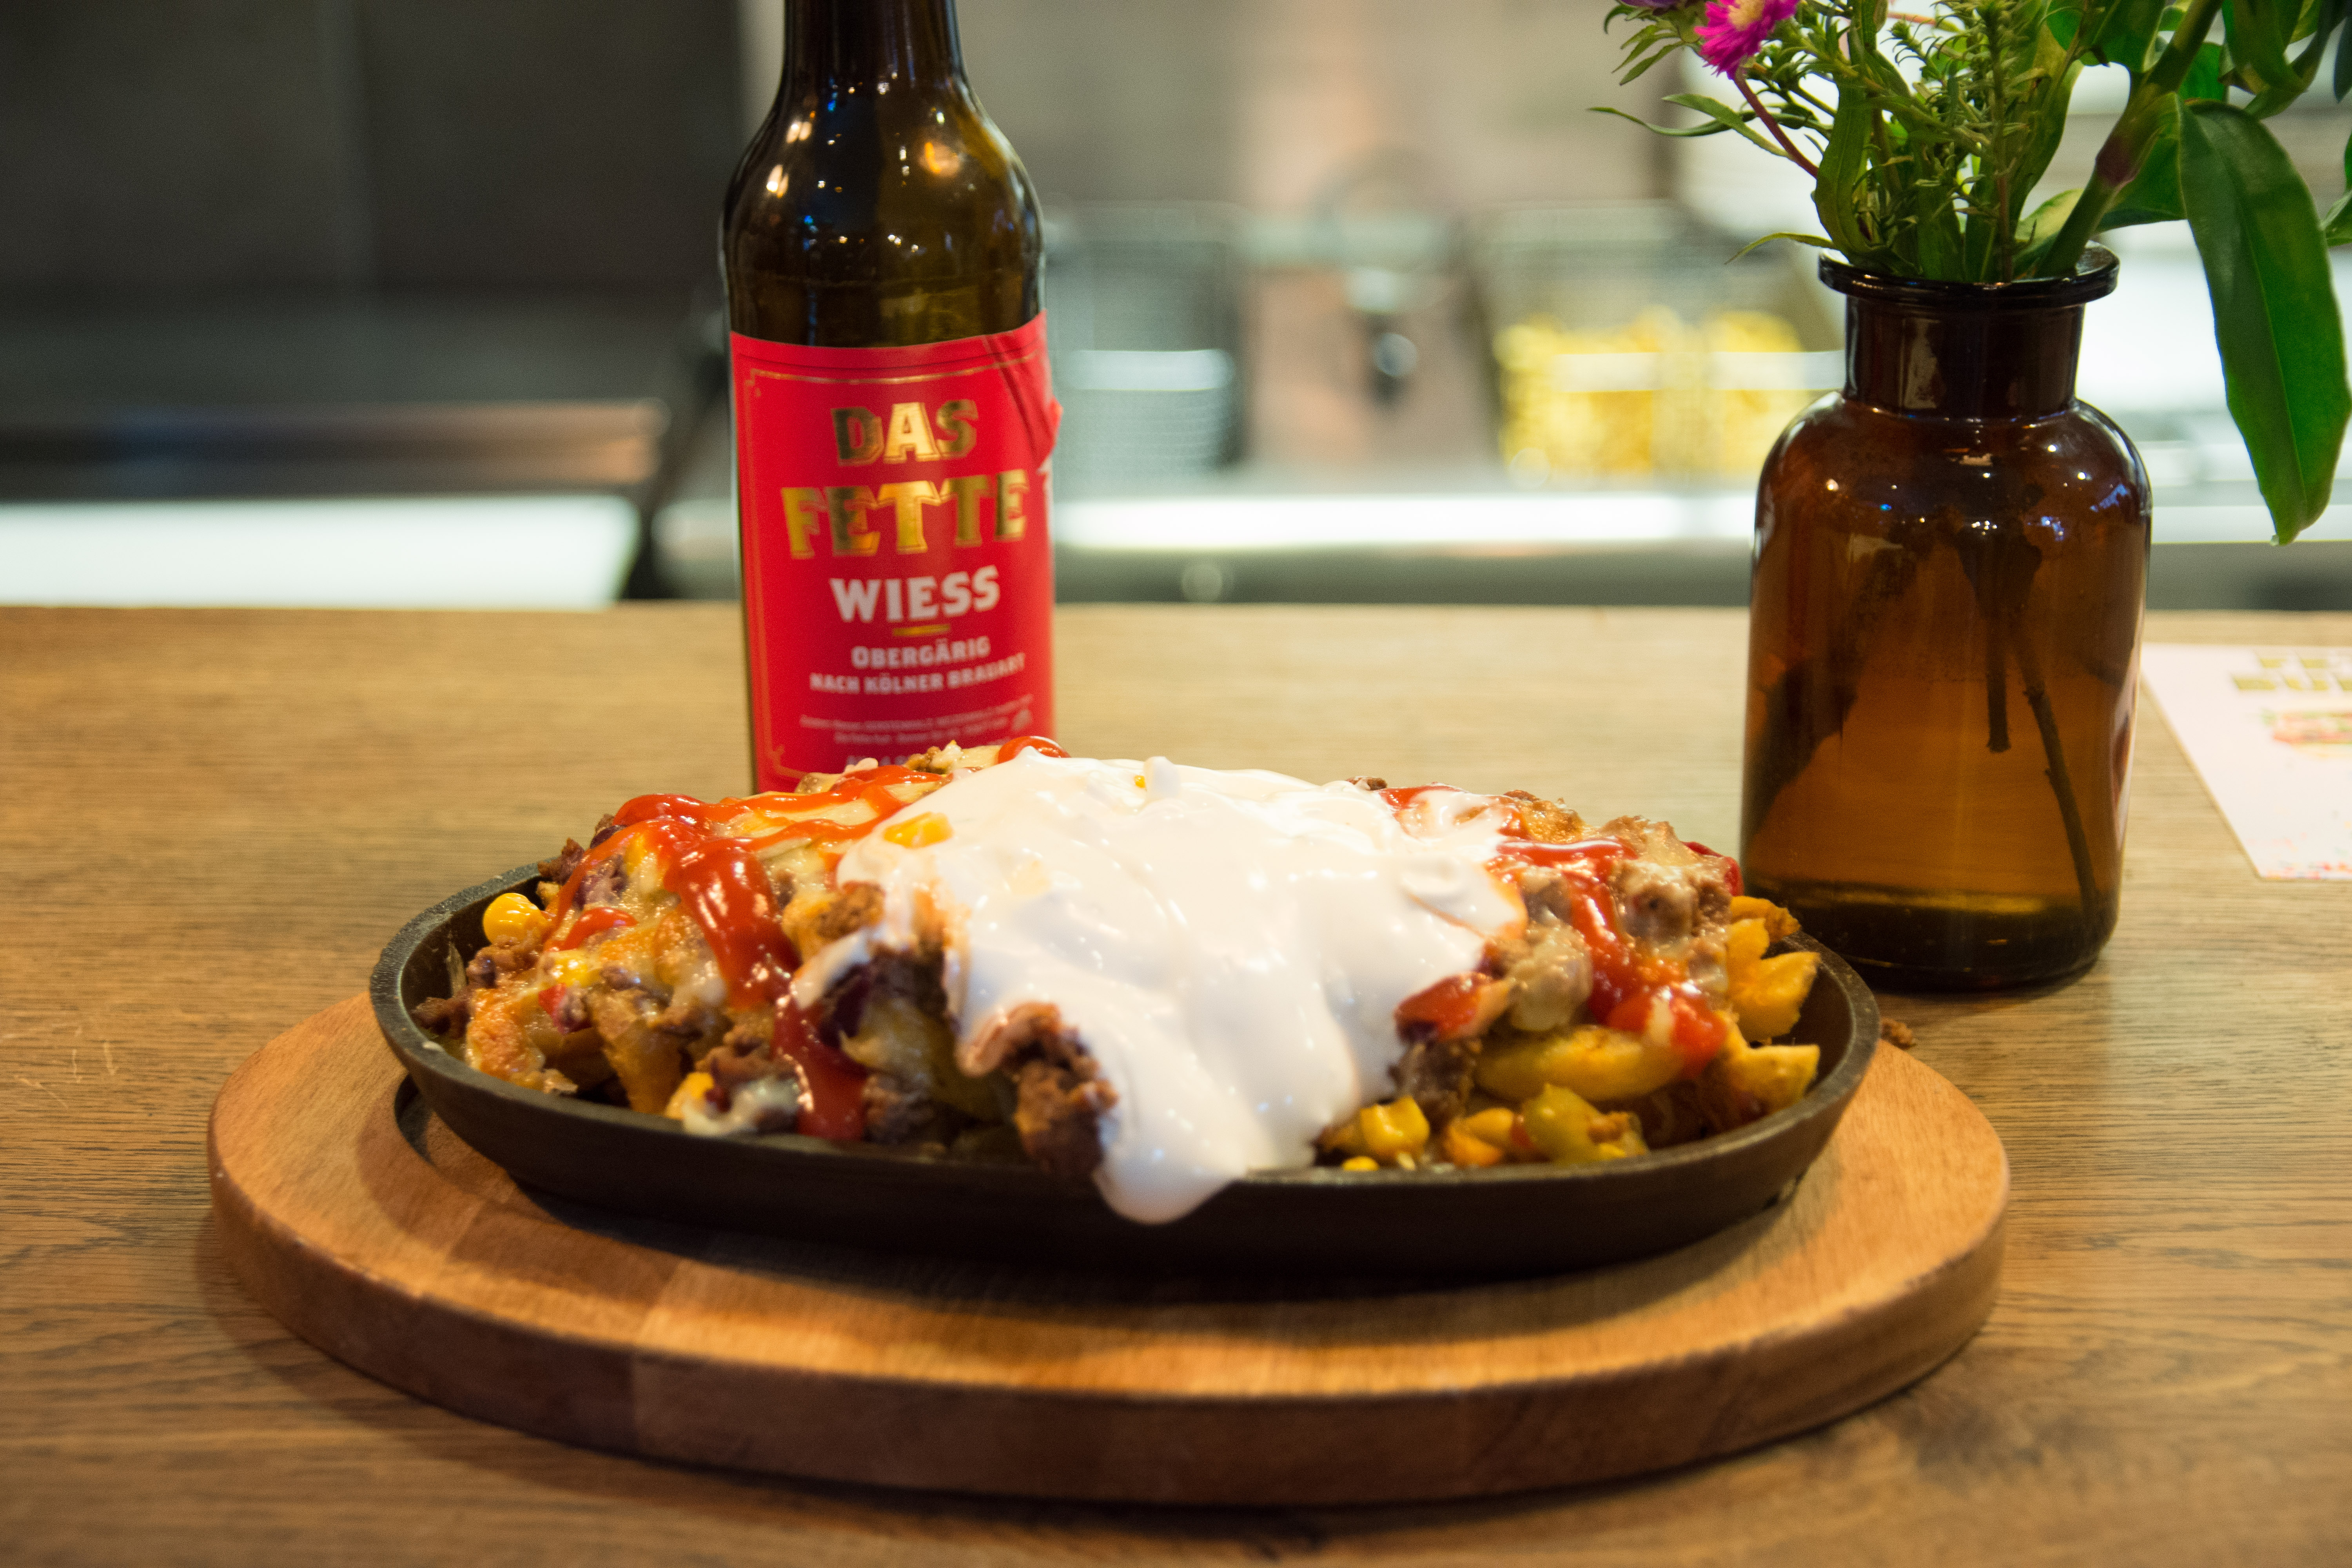 redmountain-bbq-die-fette-kuh-chili-cheese-fries